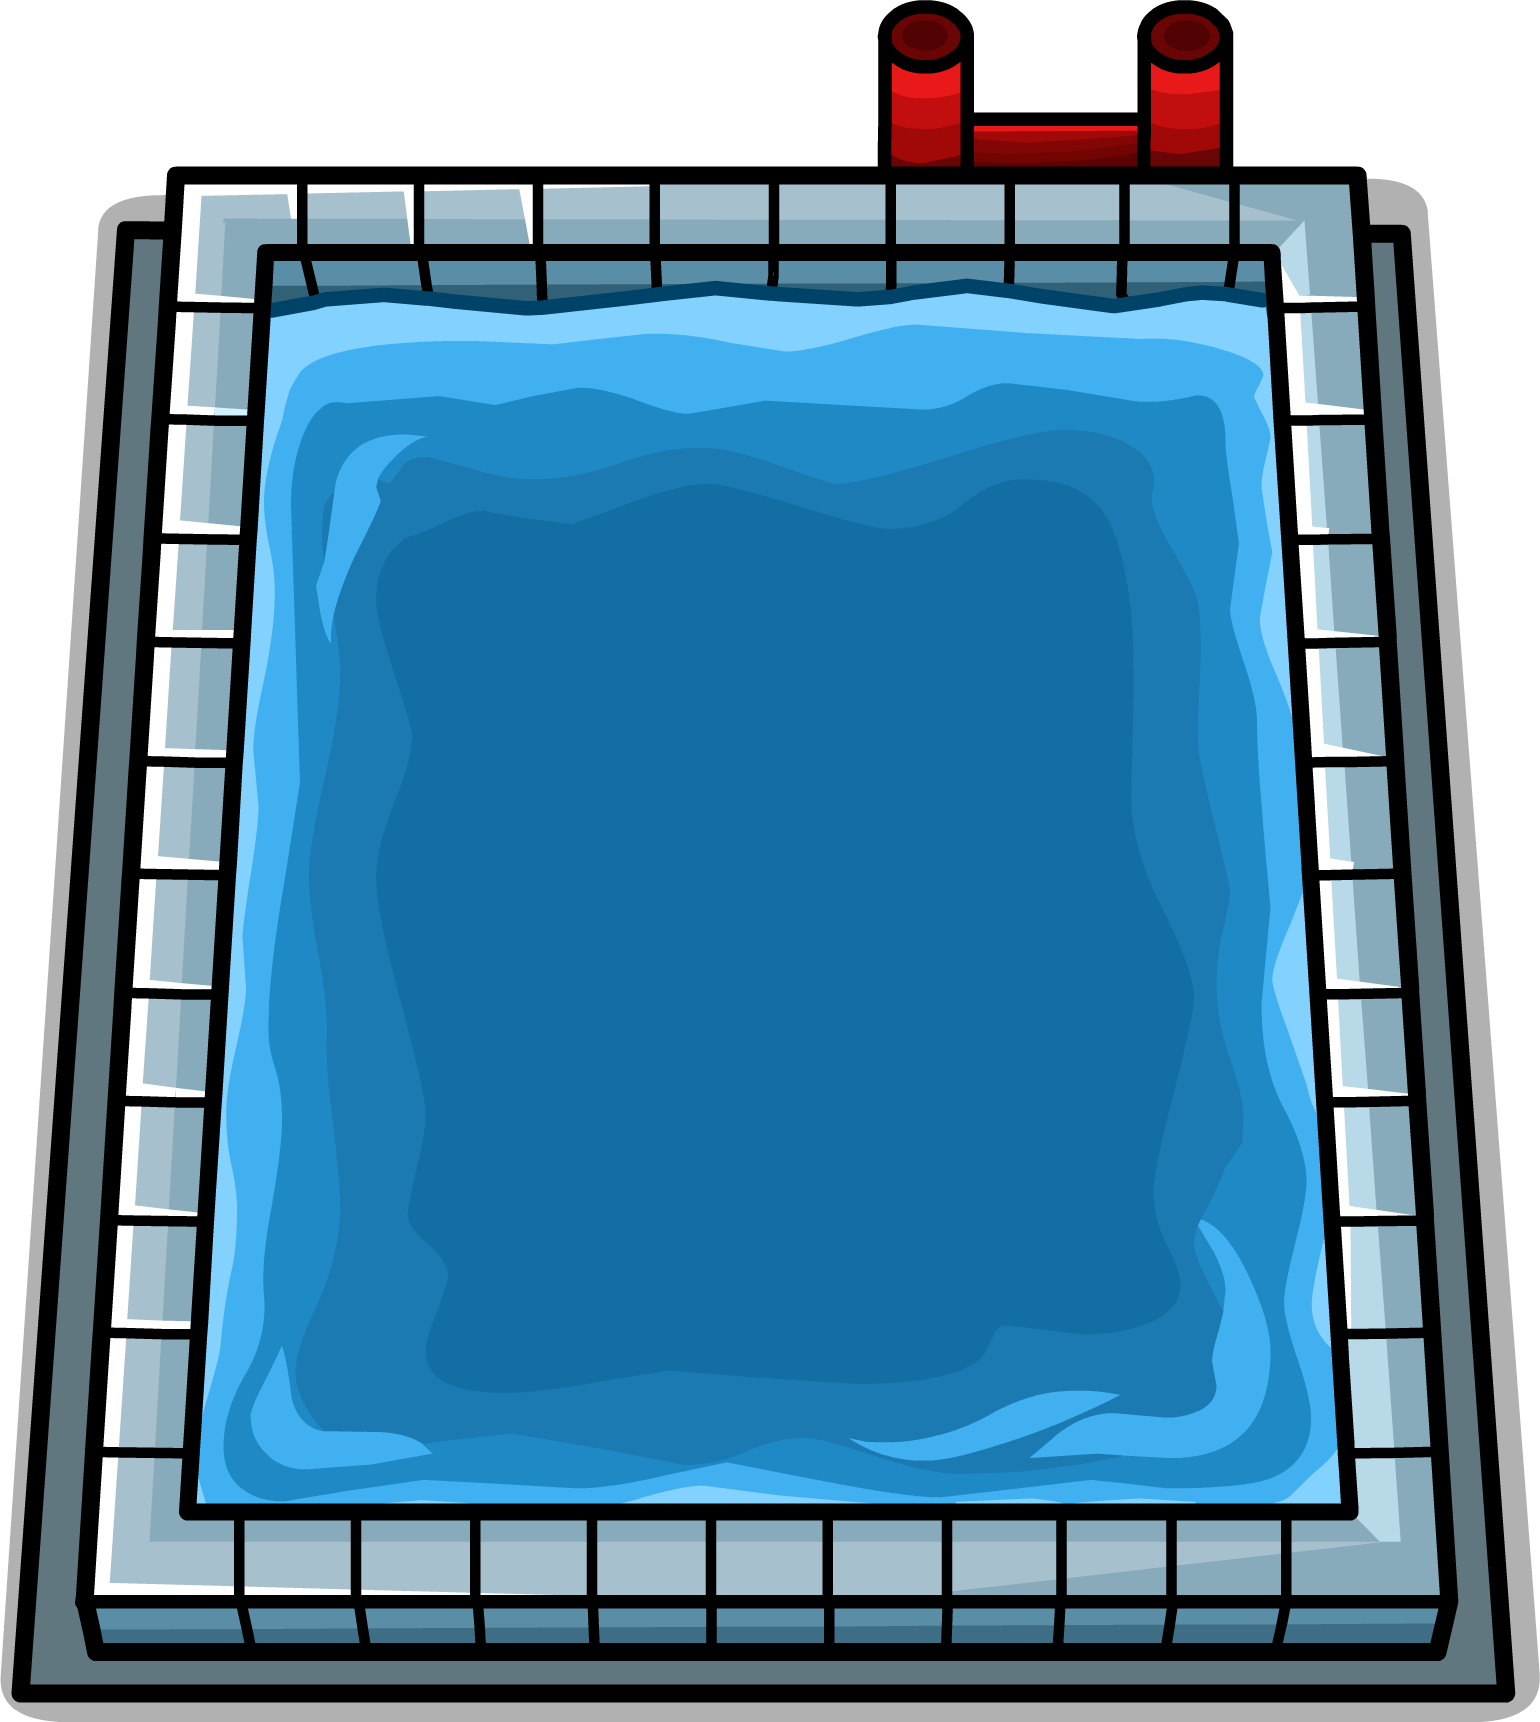 Swimming pool clipart  Image - Swimming Pool sprite 002.png | Club Penguin Wiki | FANDOM ...